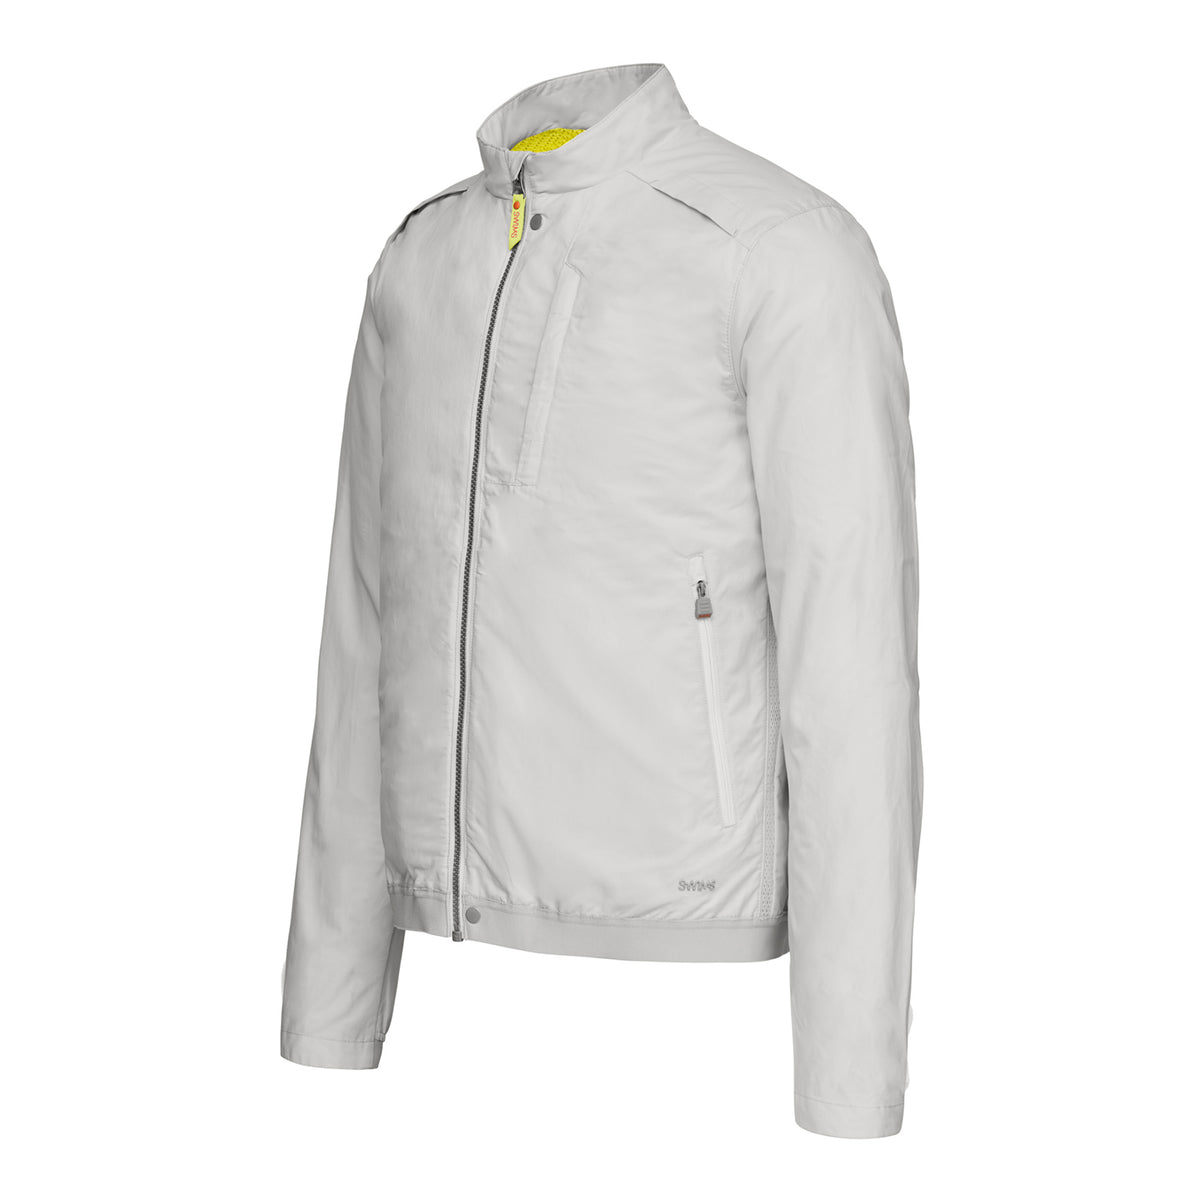 Breeze Jacket - background::white,variant::Alloy